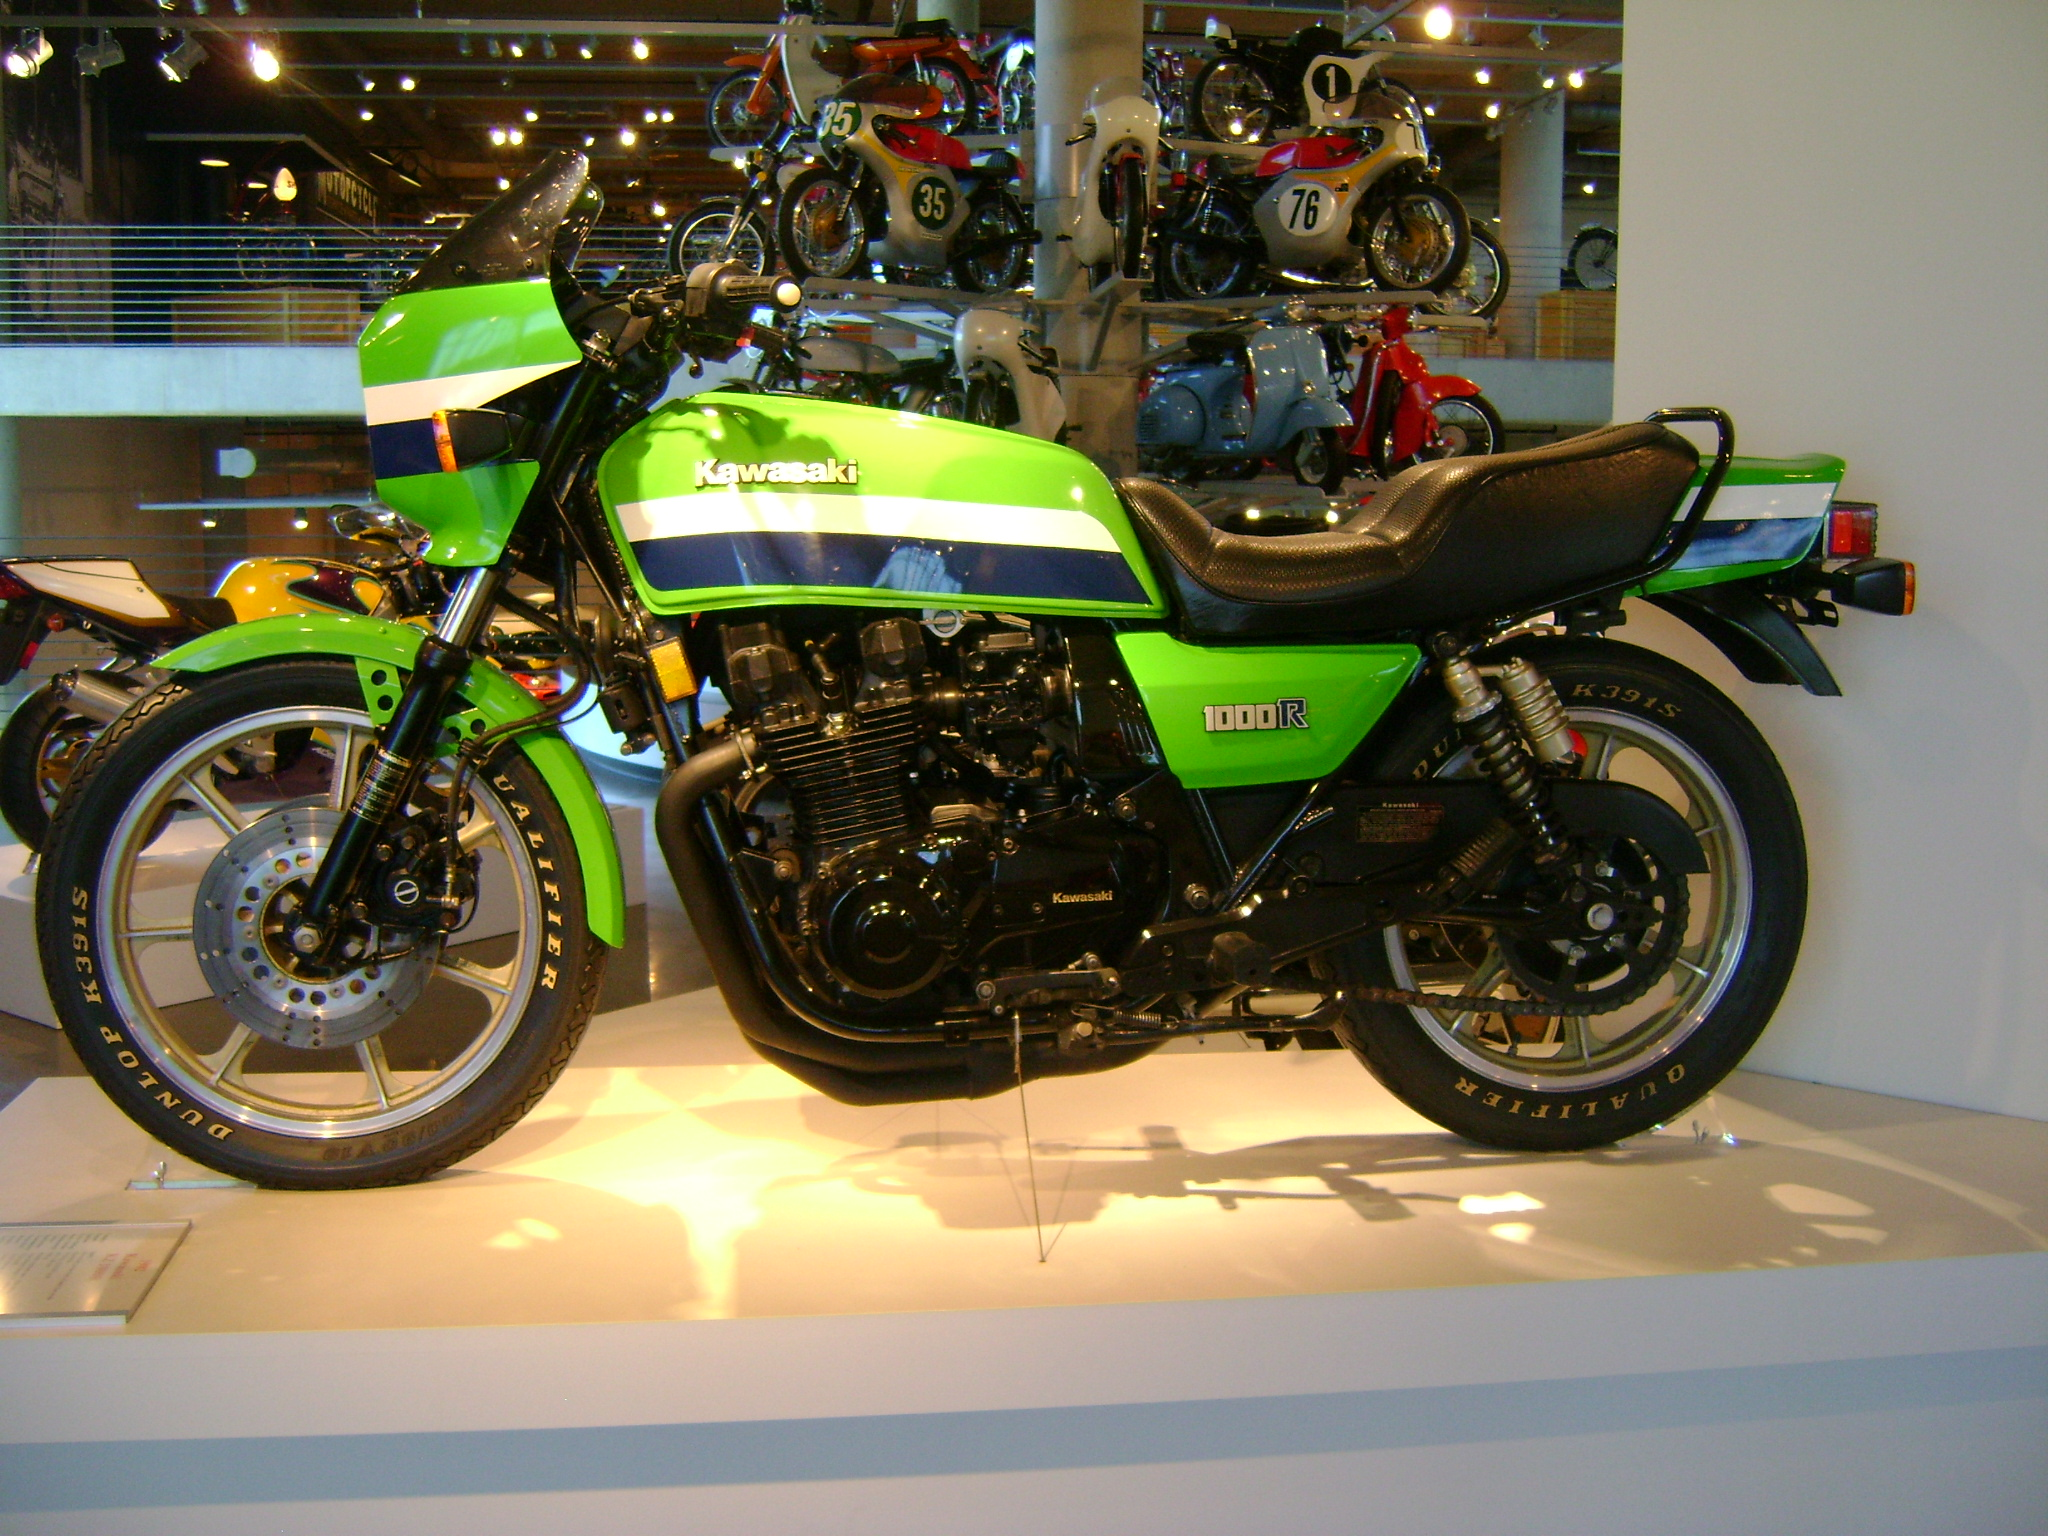 Kawasaki GPZ550 (reduced effect) #6